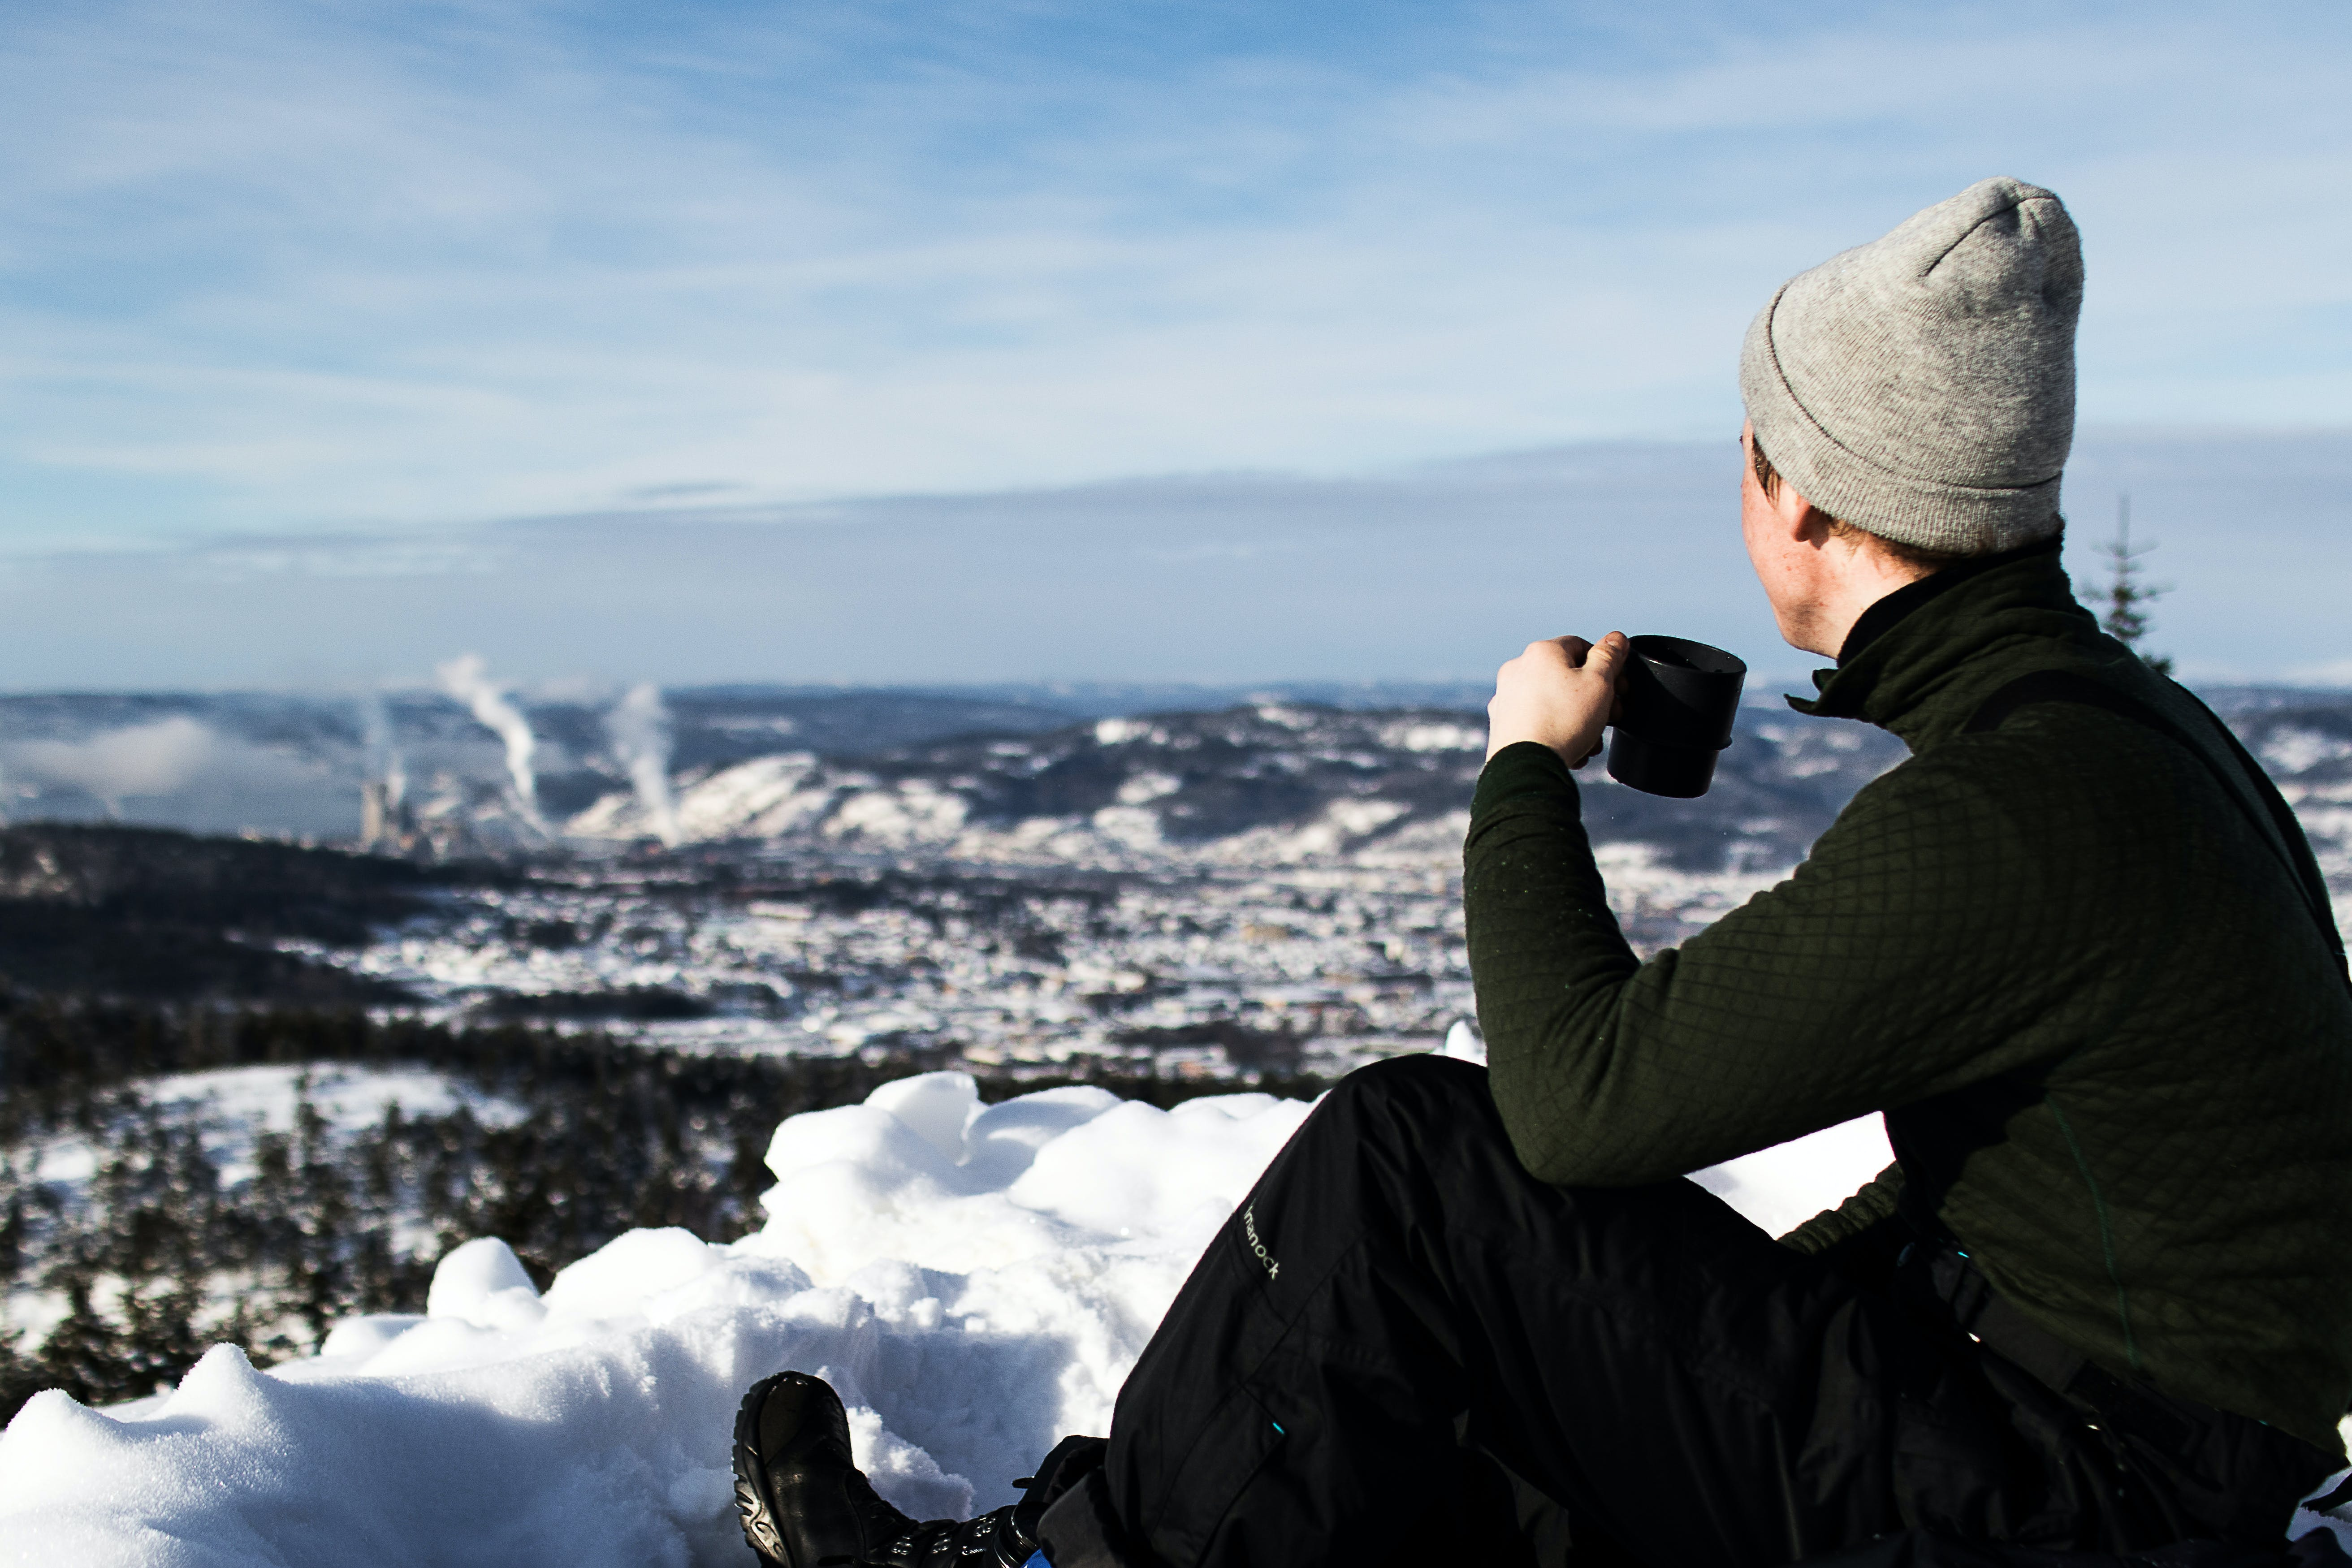 Man Wearing Jacket and Holding Cup Sitting on the Snow